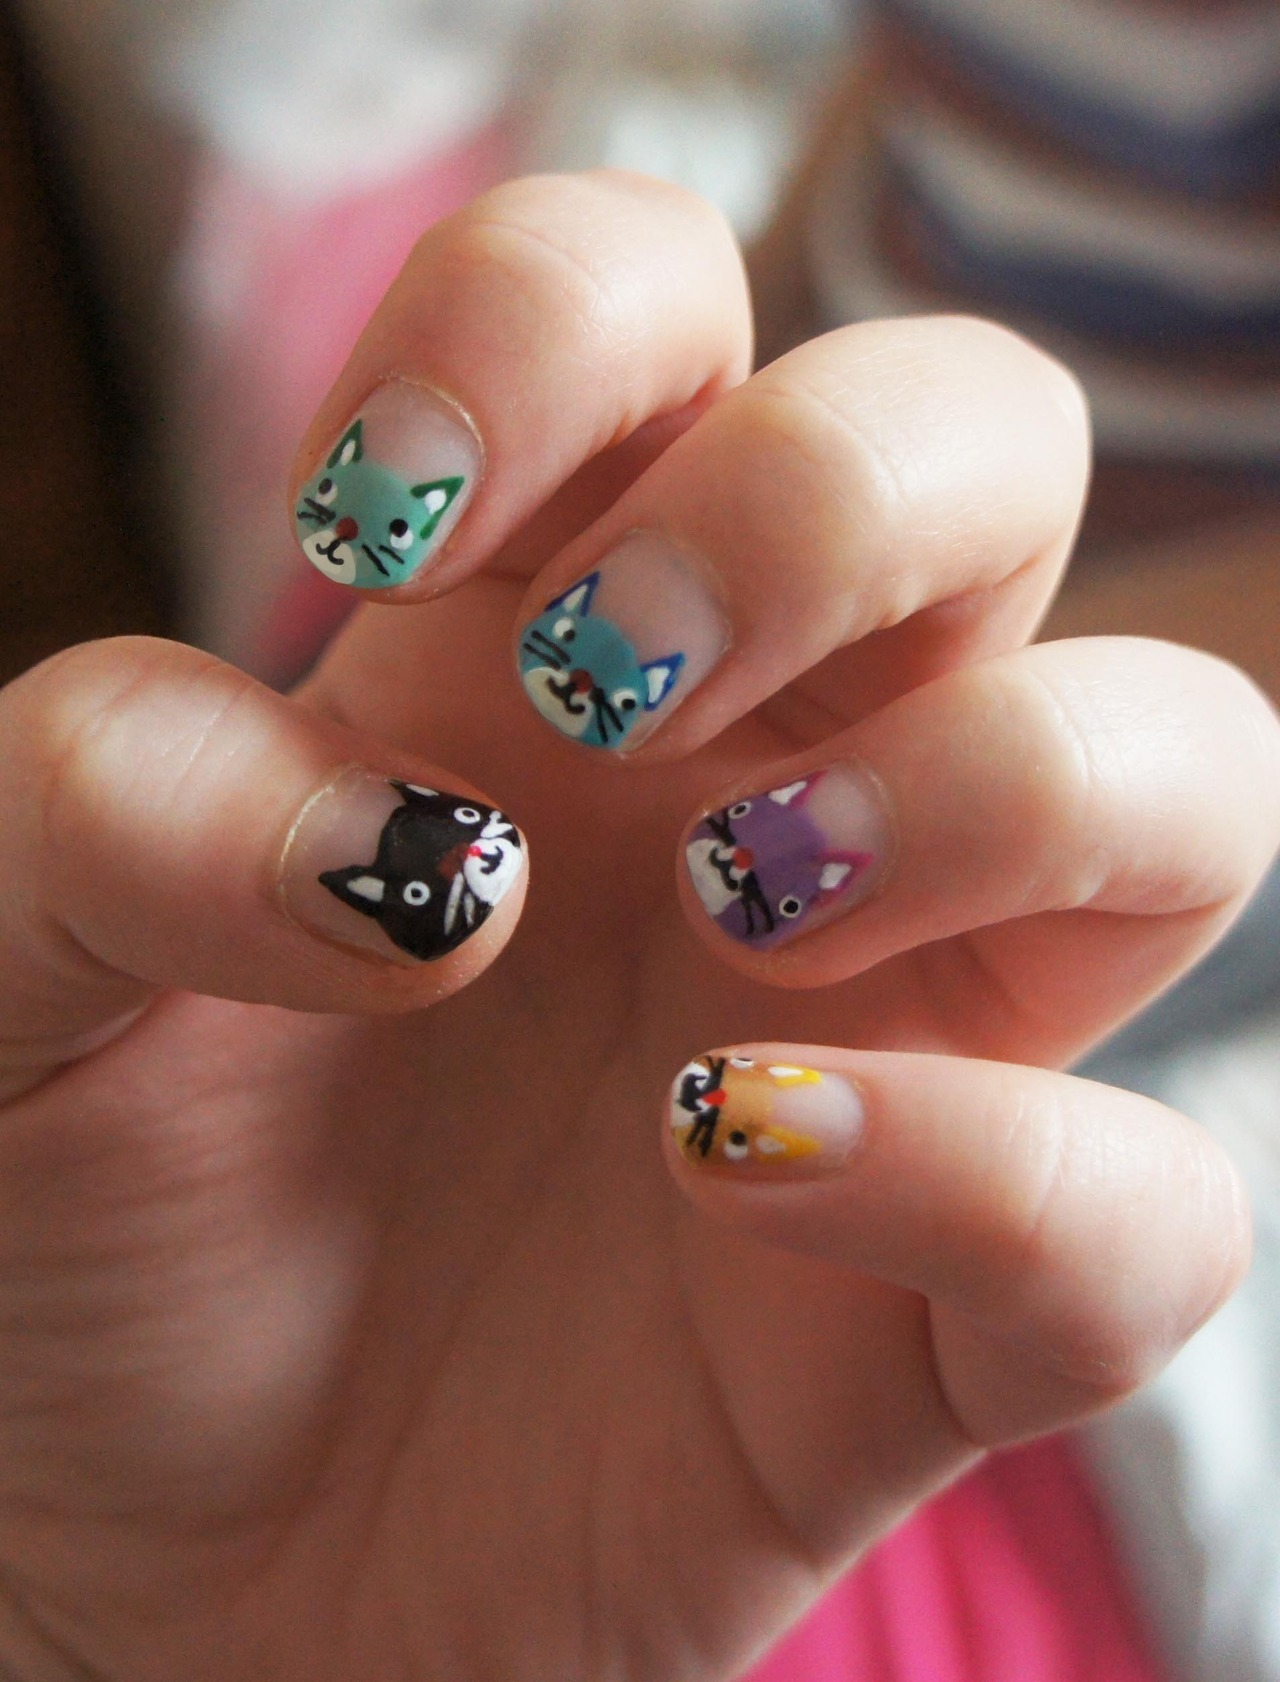 sophiebryant-funnell:  and some cat nails I did agessss ago, they were so cute!